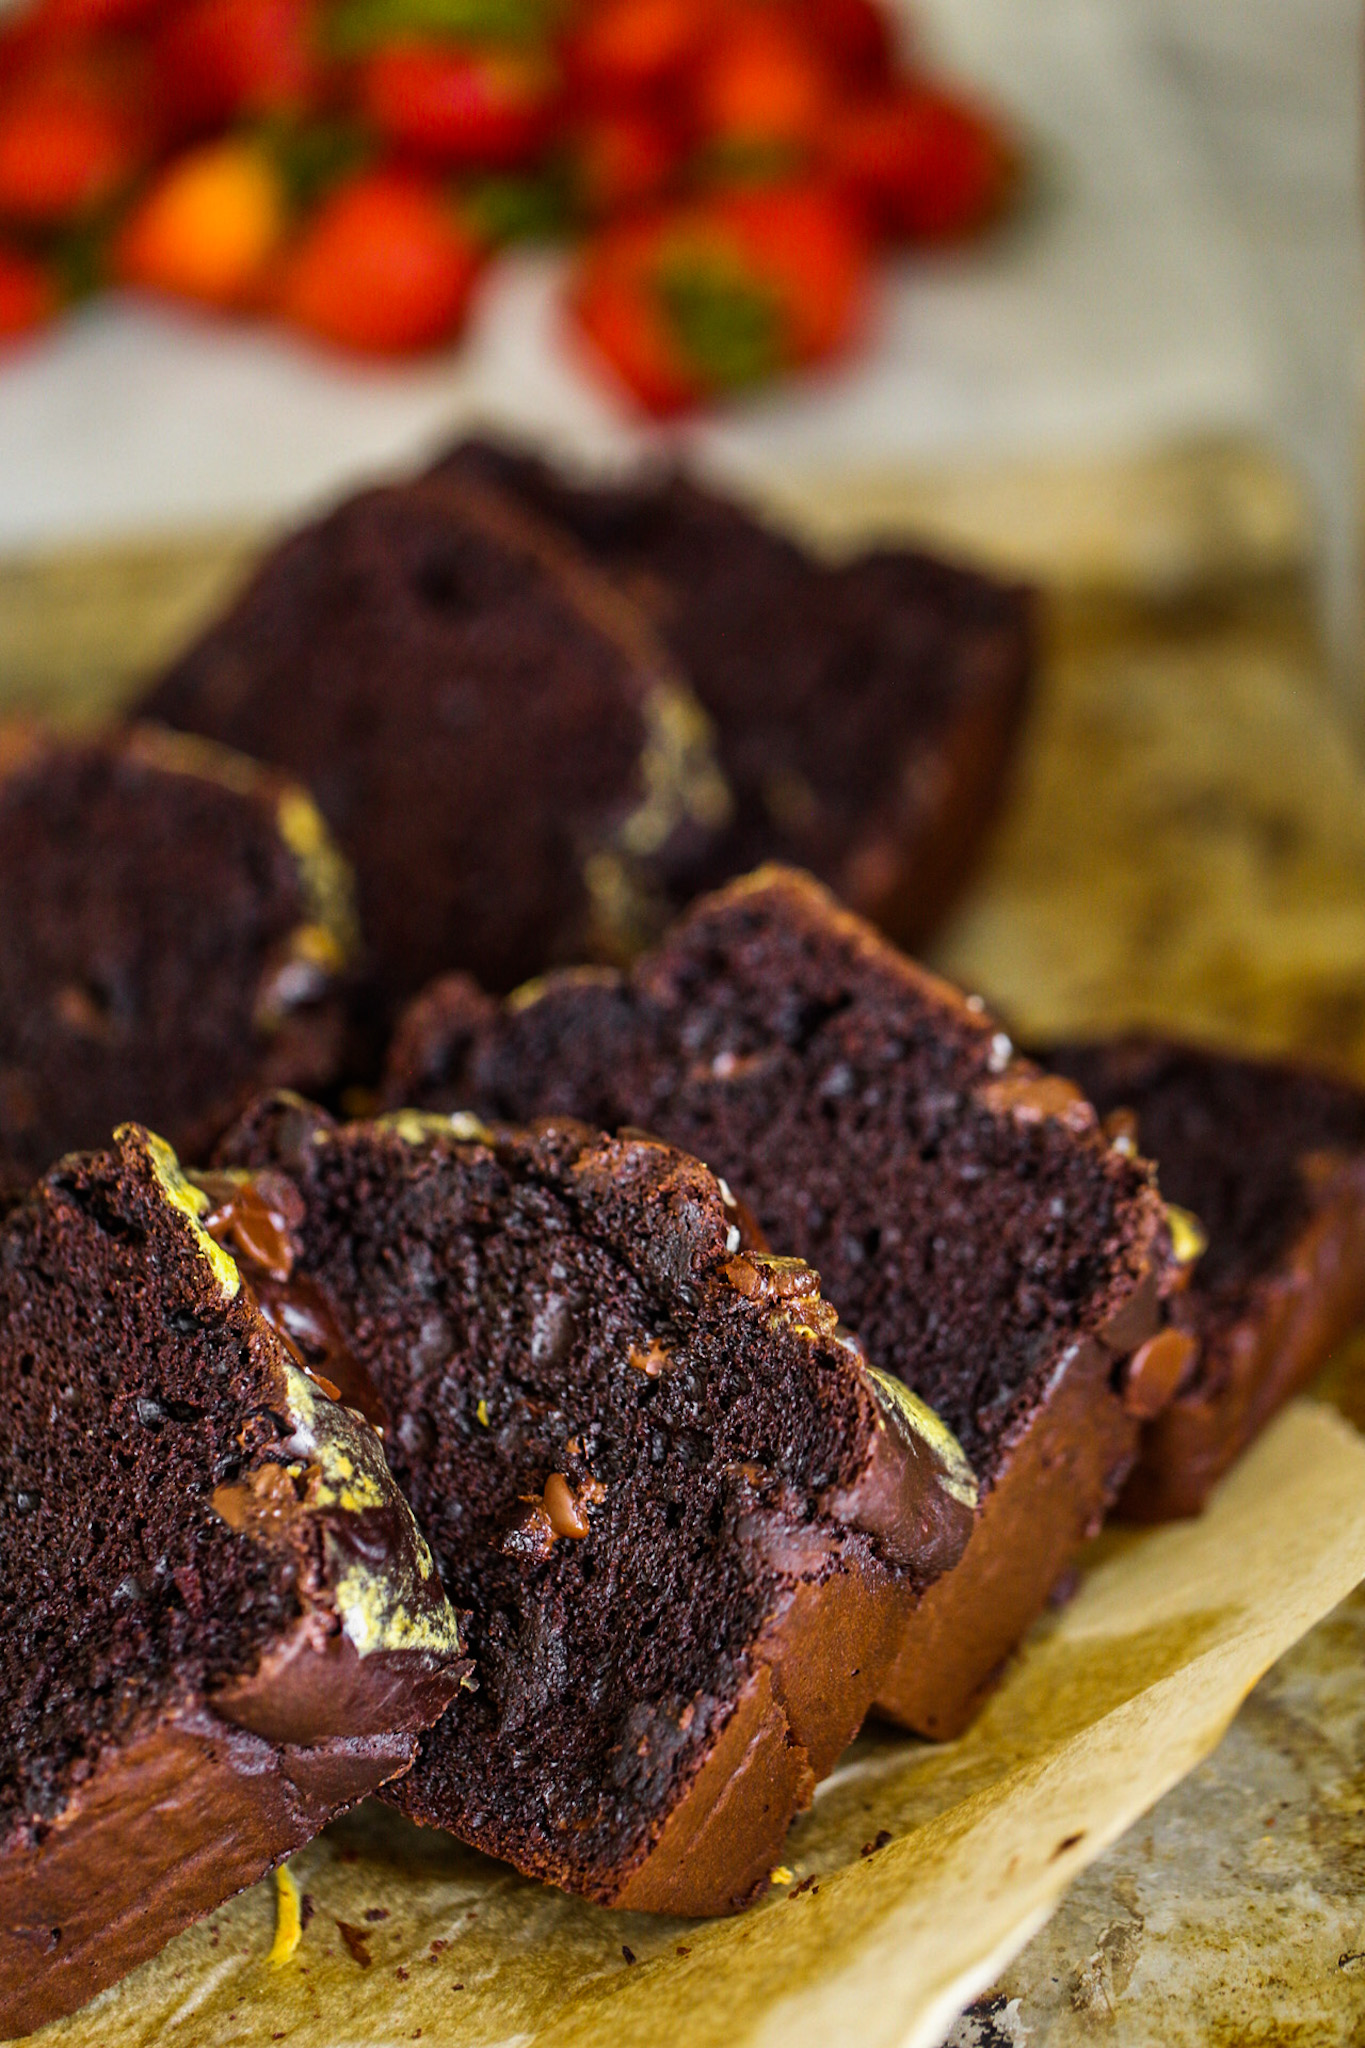 moist and fluffy chocolate loaf slices